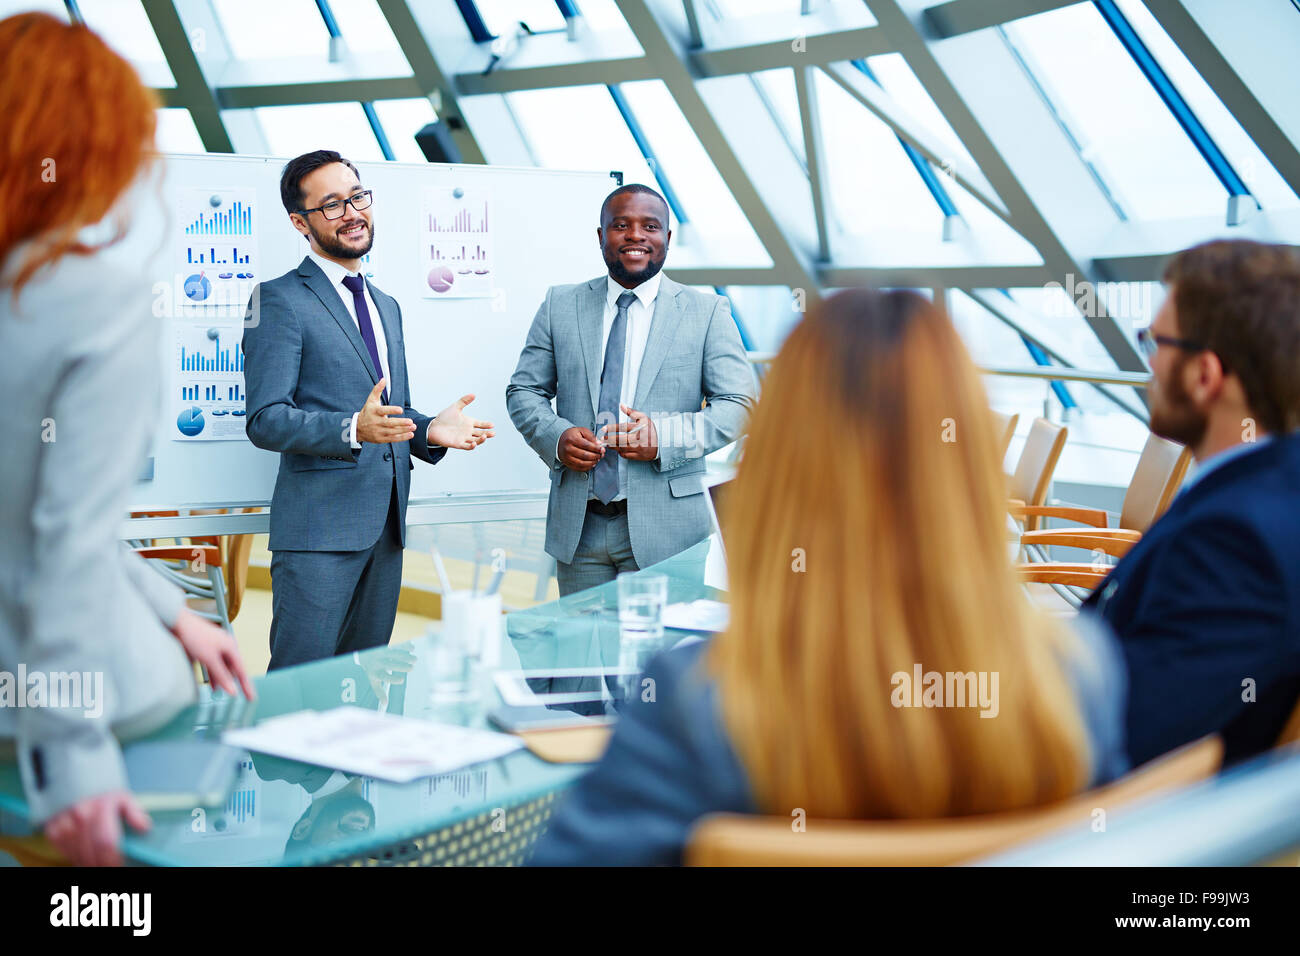 Two businessmen explaining colleagues latest data - Stock Image